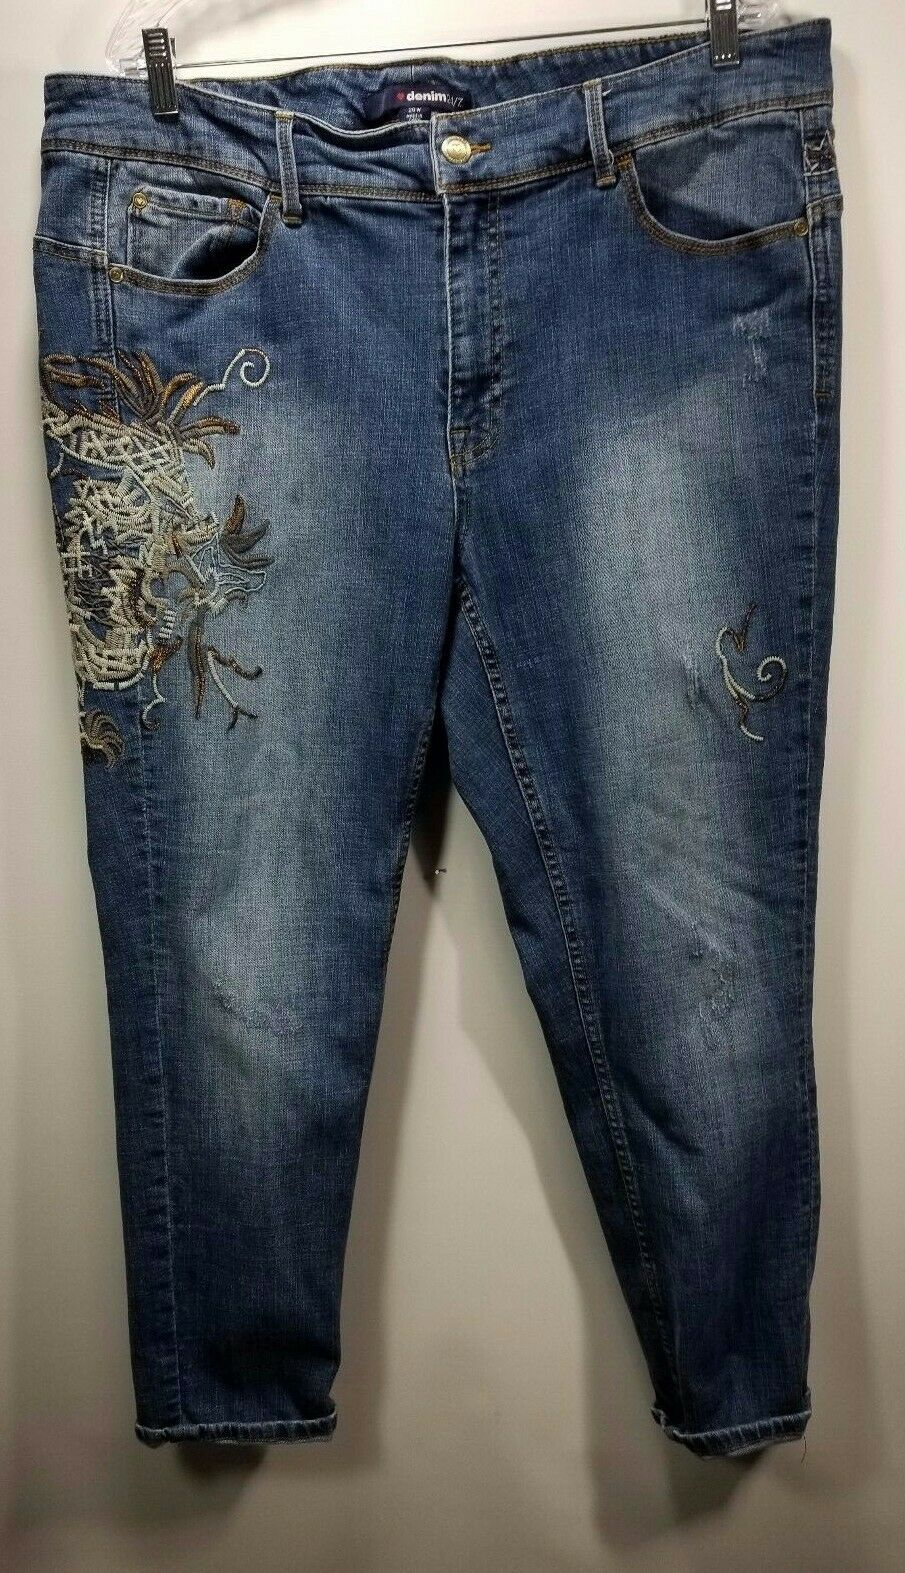 Denim 24 7 Womens Distressed Embroidered Legs & Waist Sz 20 Stretch Skinny Jeans